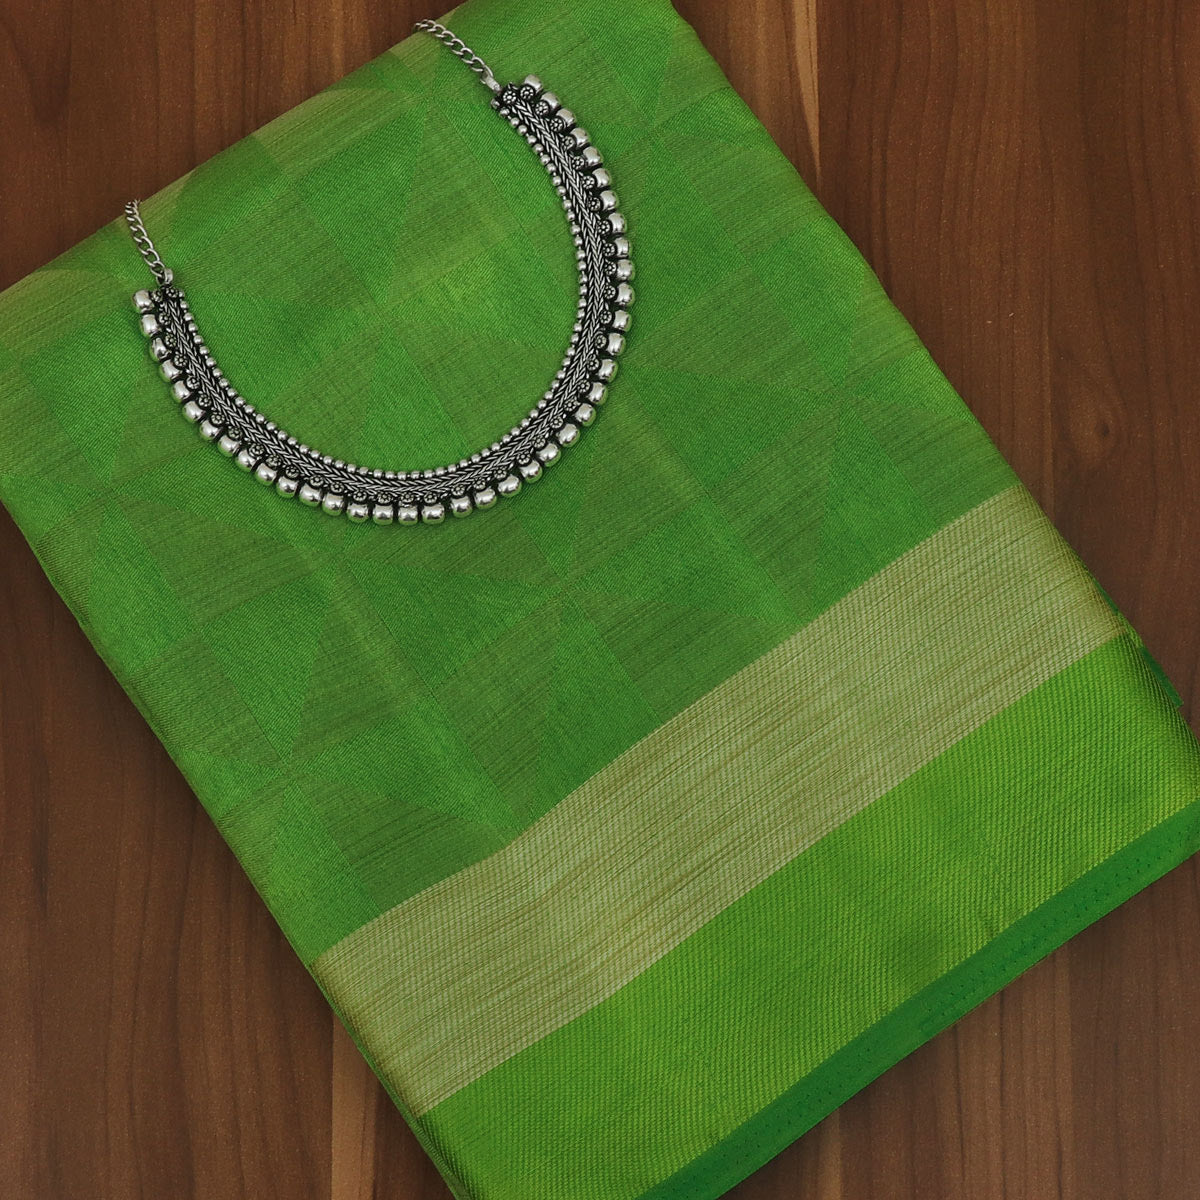 Raw Silk Saree Parrot Green Shade with Simple border and jewel